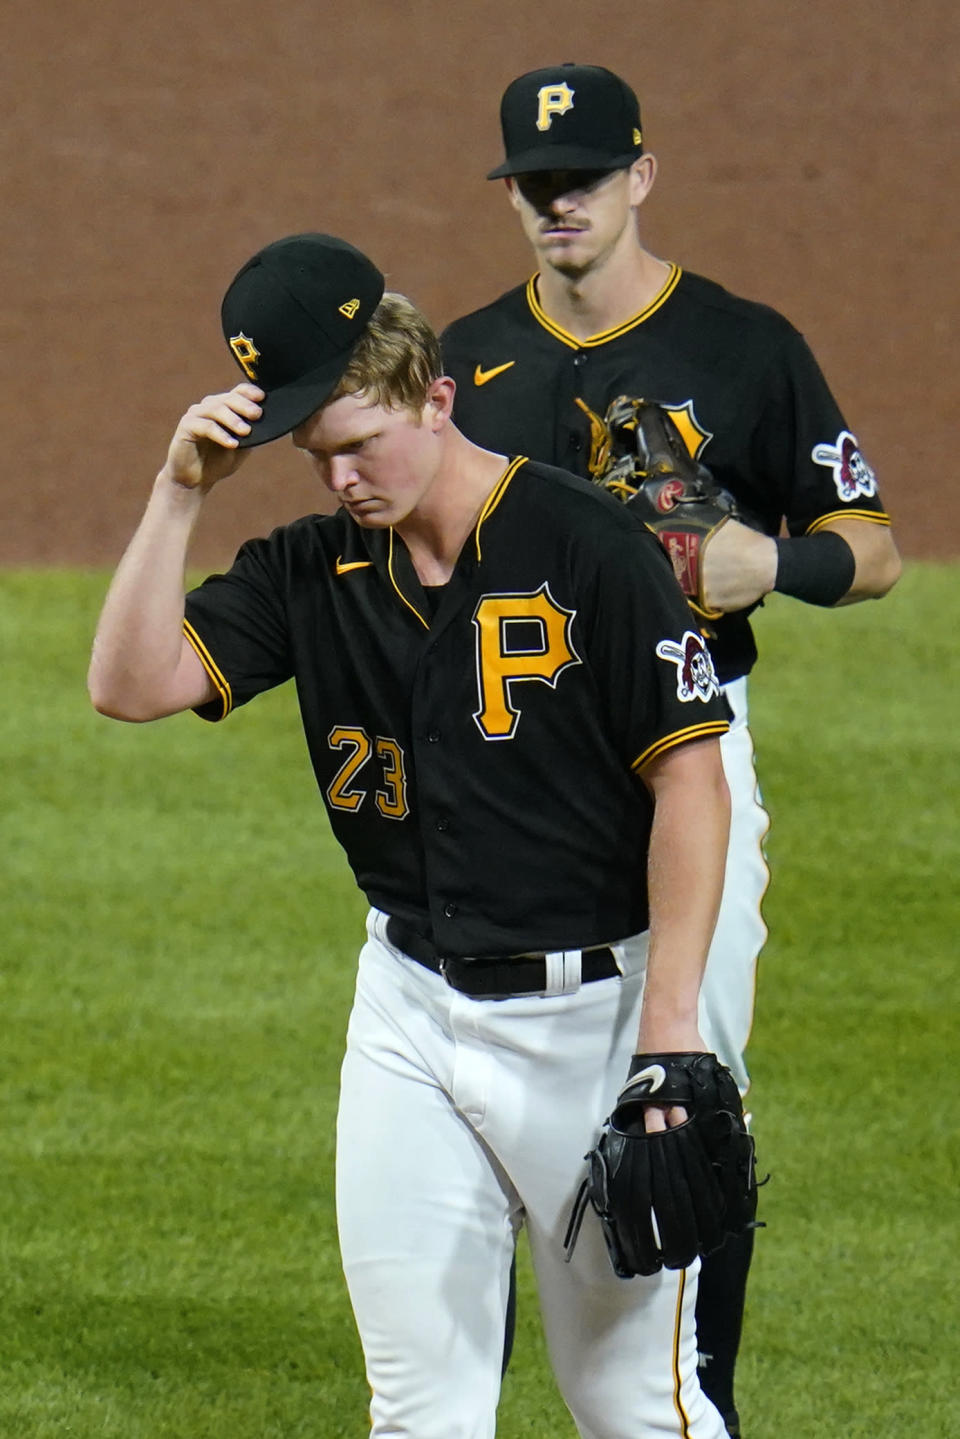 Pittsburgh Pirates starting pitcher Mitch Keller (23) waits to hand the ball to manager Derek Shelton and leave the game, during the fifth inning of a baseball game against the Chicago Cubs in Pittsburgh, Tuesday, Sept. 28, 2021. (AP Photo/Gene J. Puskar)